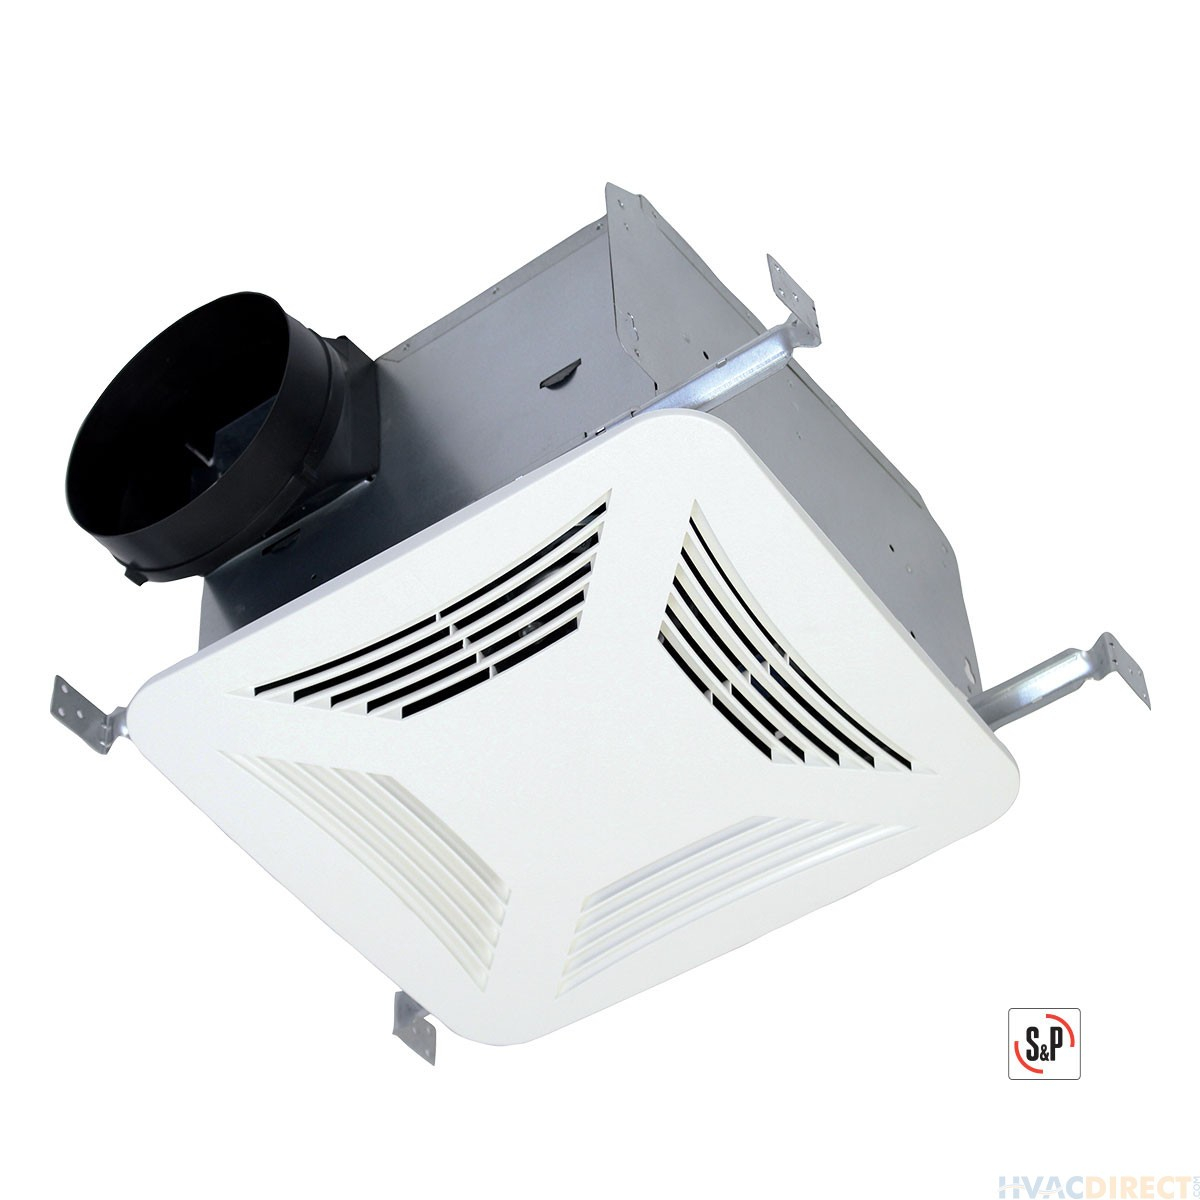 Sp Premium Choice Ceiling Mounted Bathroom Exhaust Fan 80 Cfm Pc80x pertaining to size 1200 X 1200